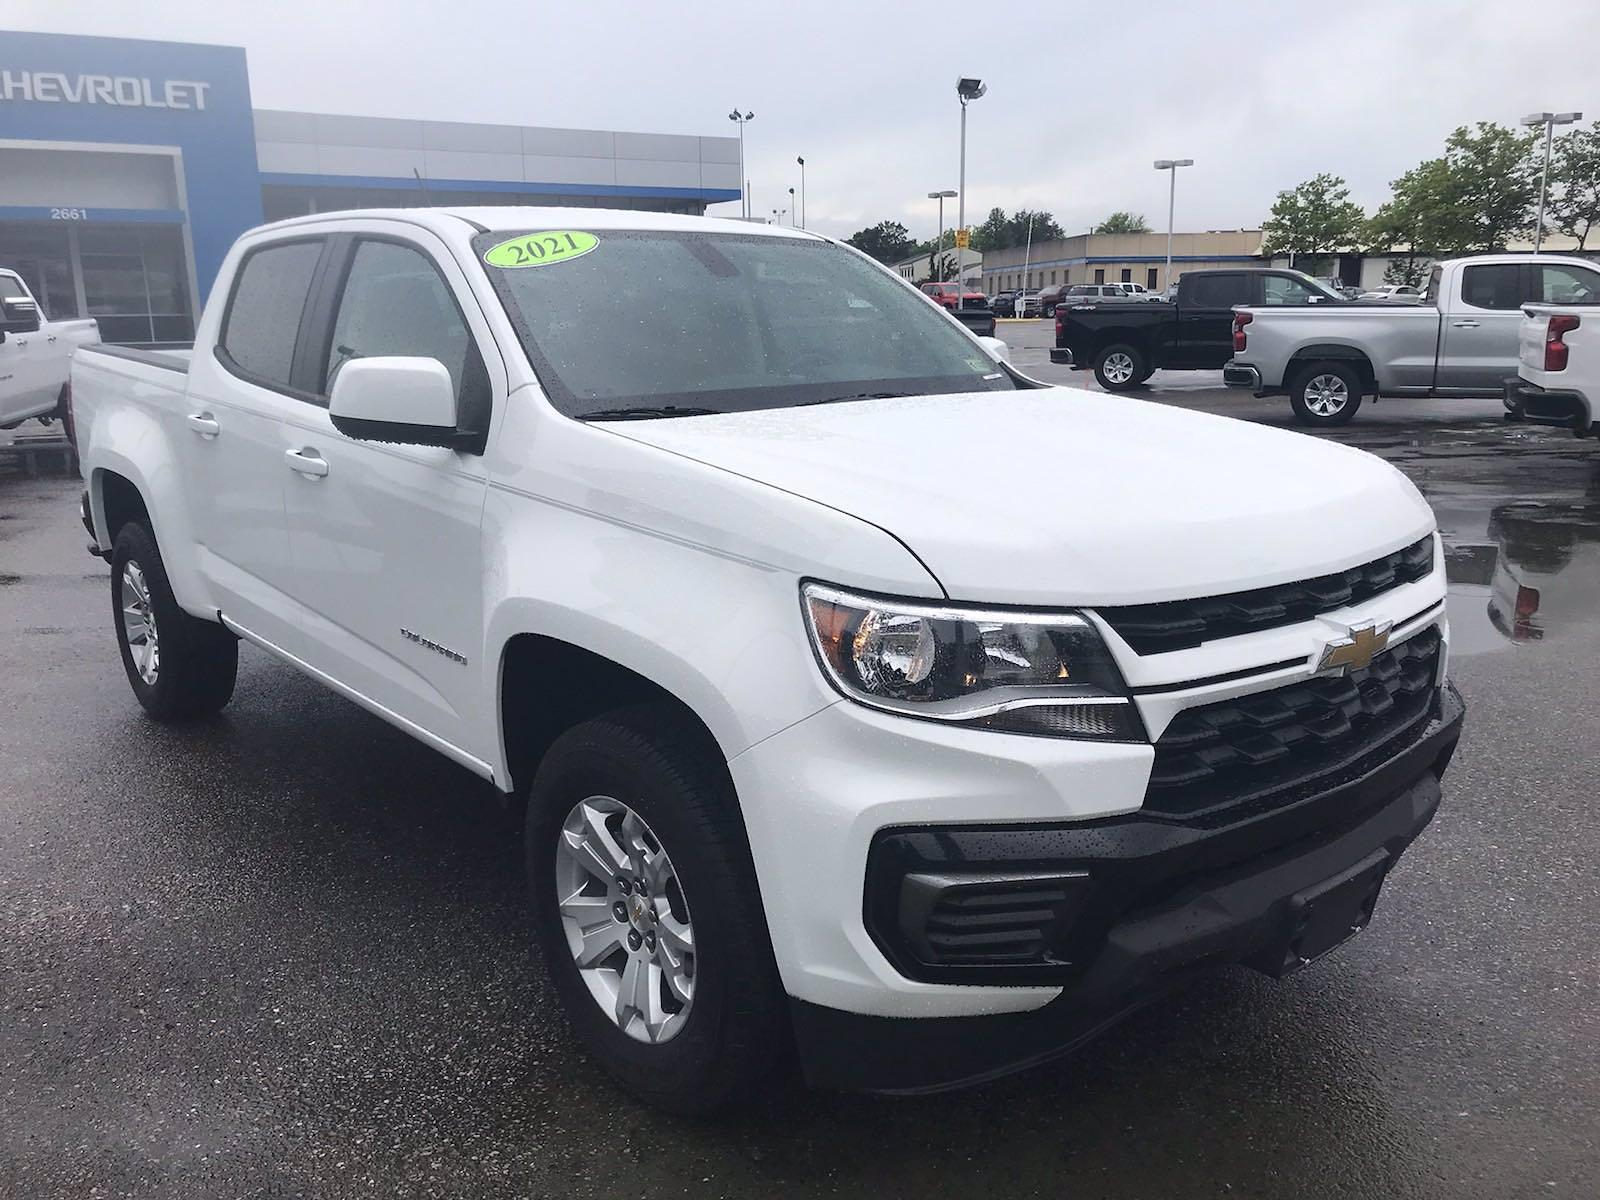 2021 Chevrolet Colorado Crew Cab 4x2, Pickup #215961 - photo 3